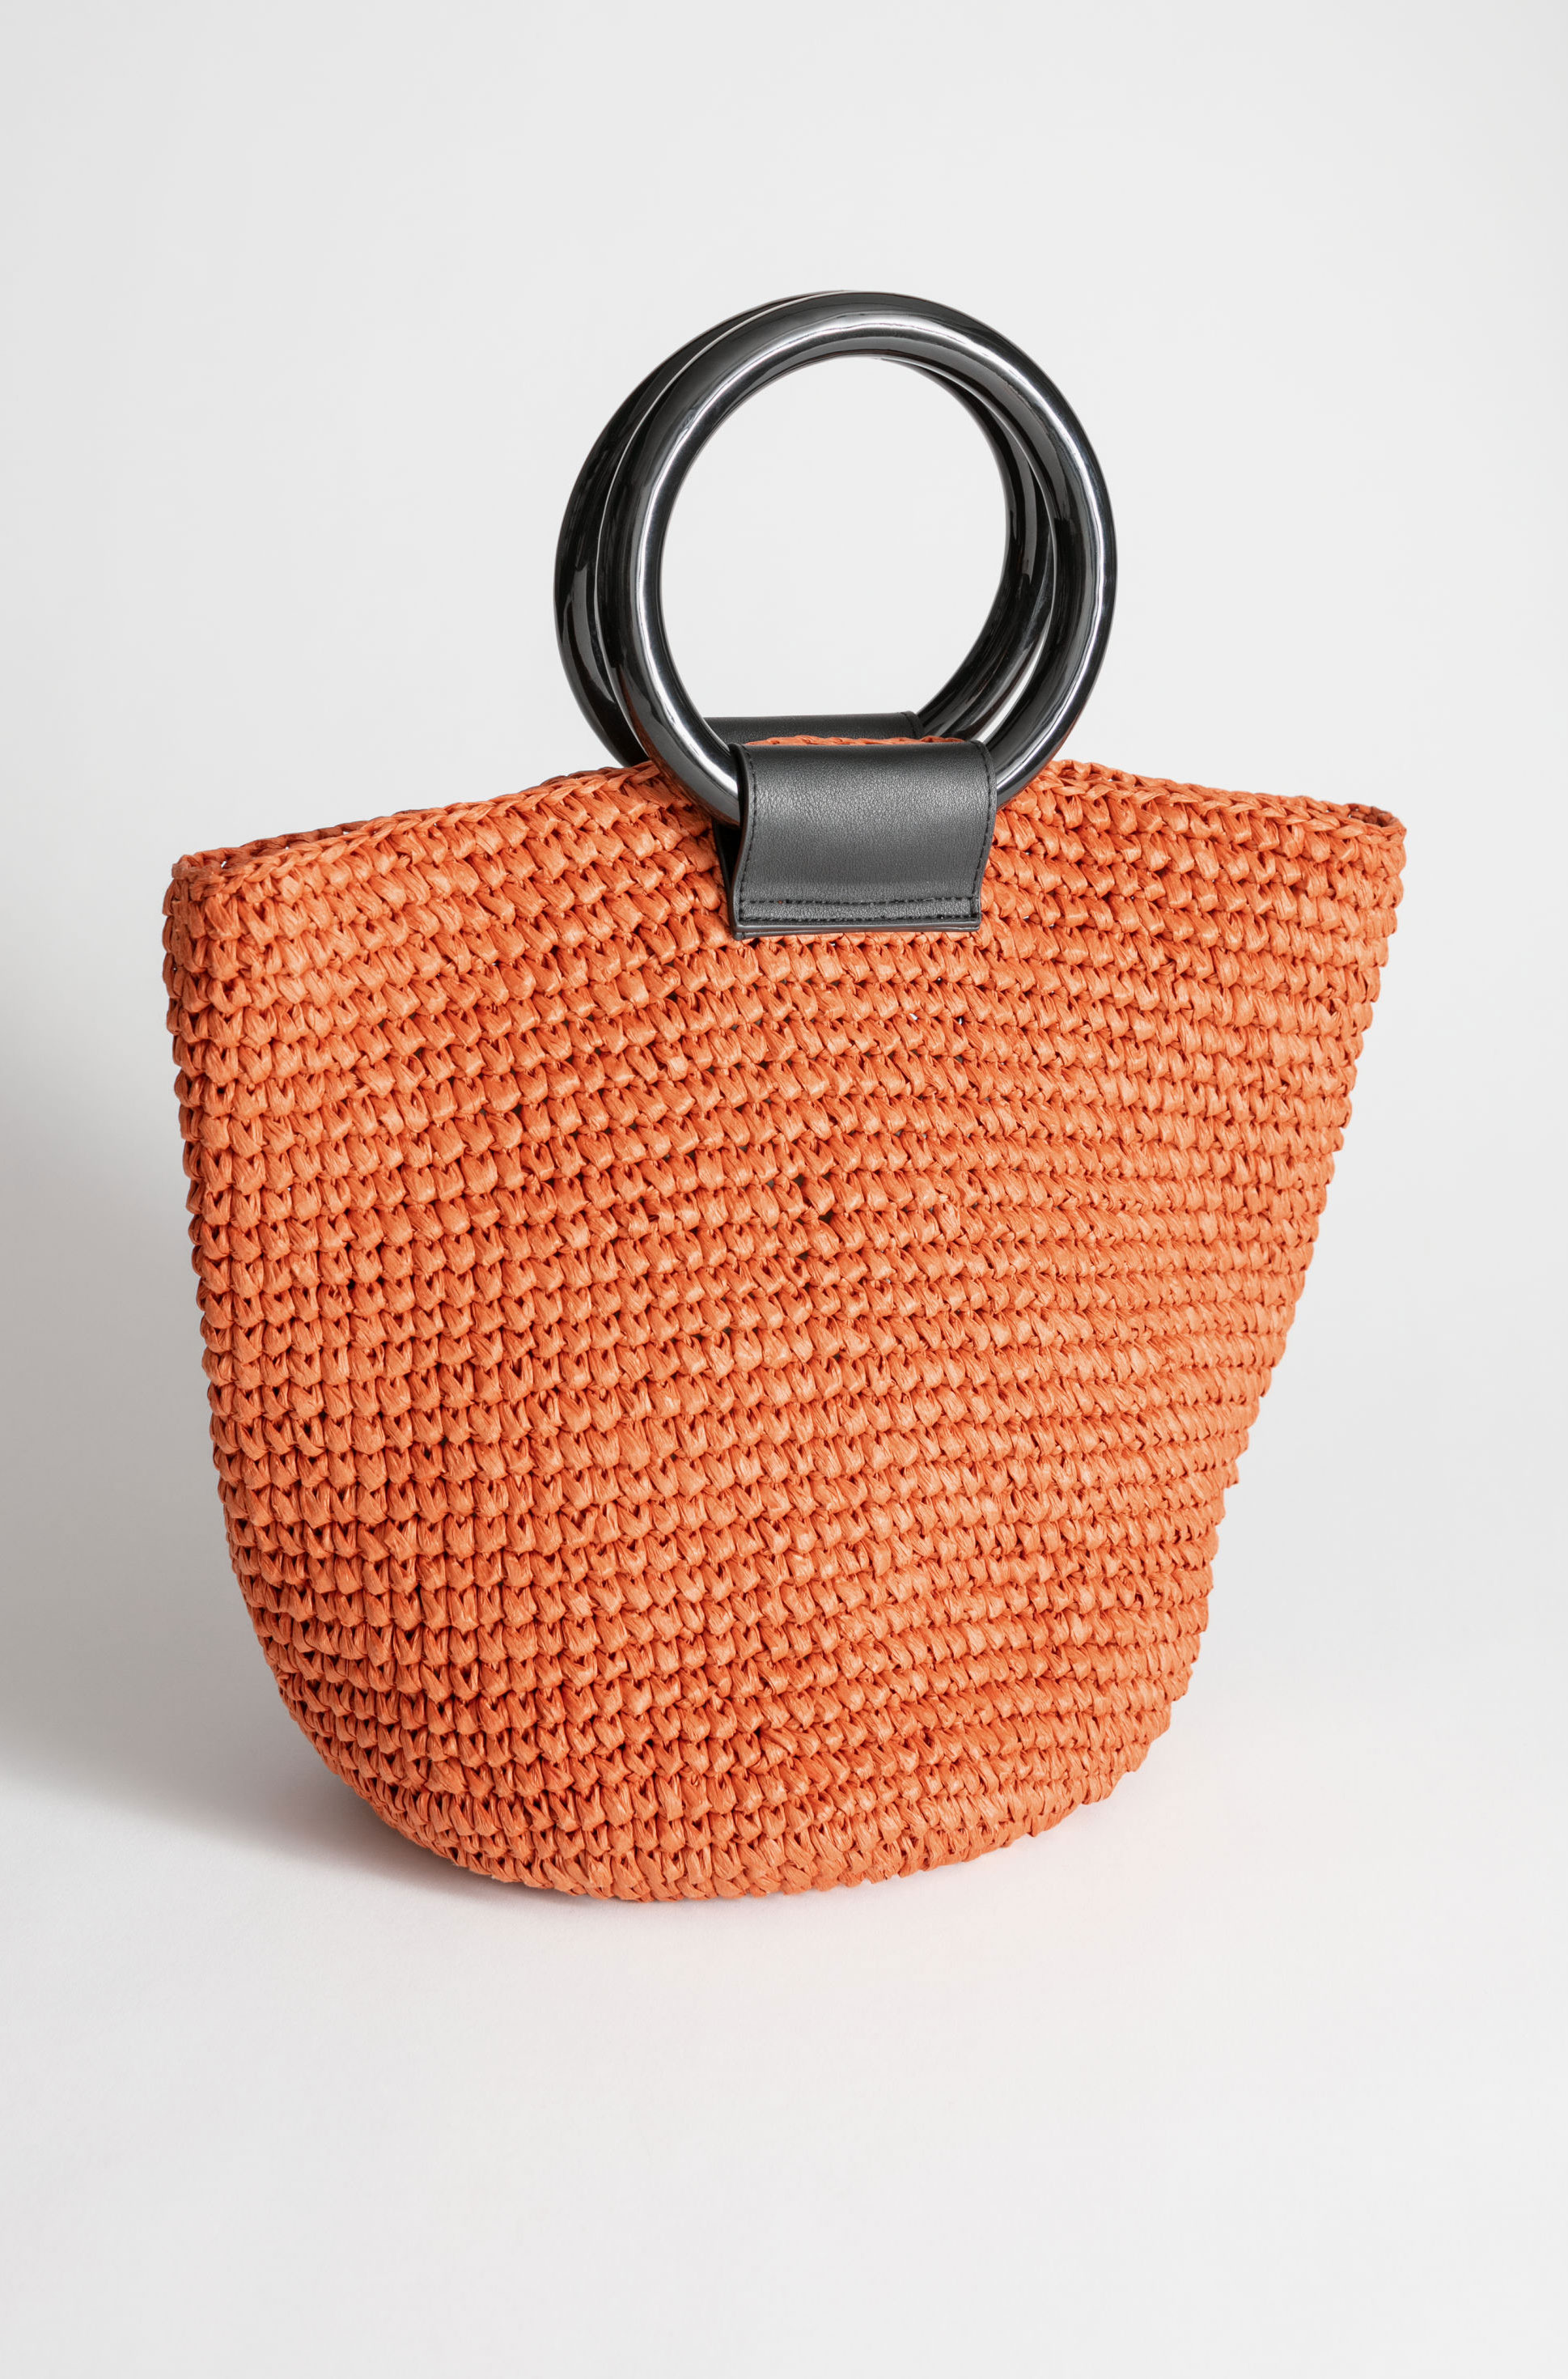 & Other Stories Straw Tote    $79